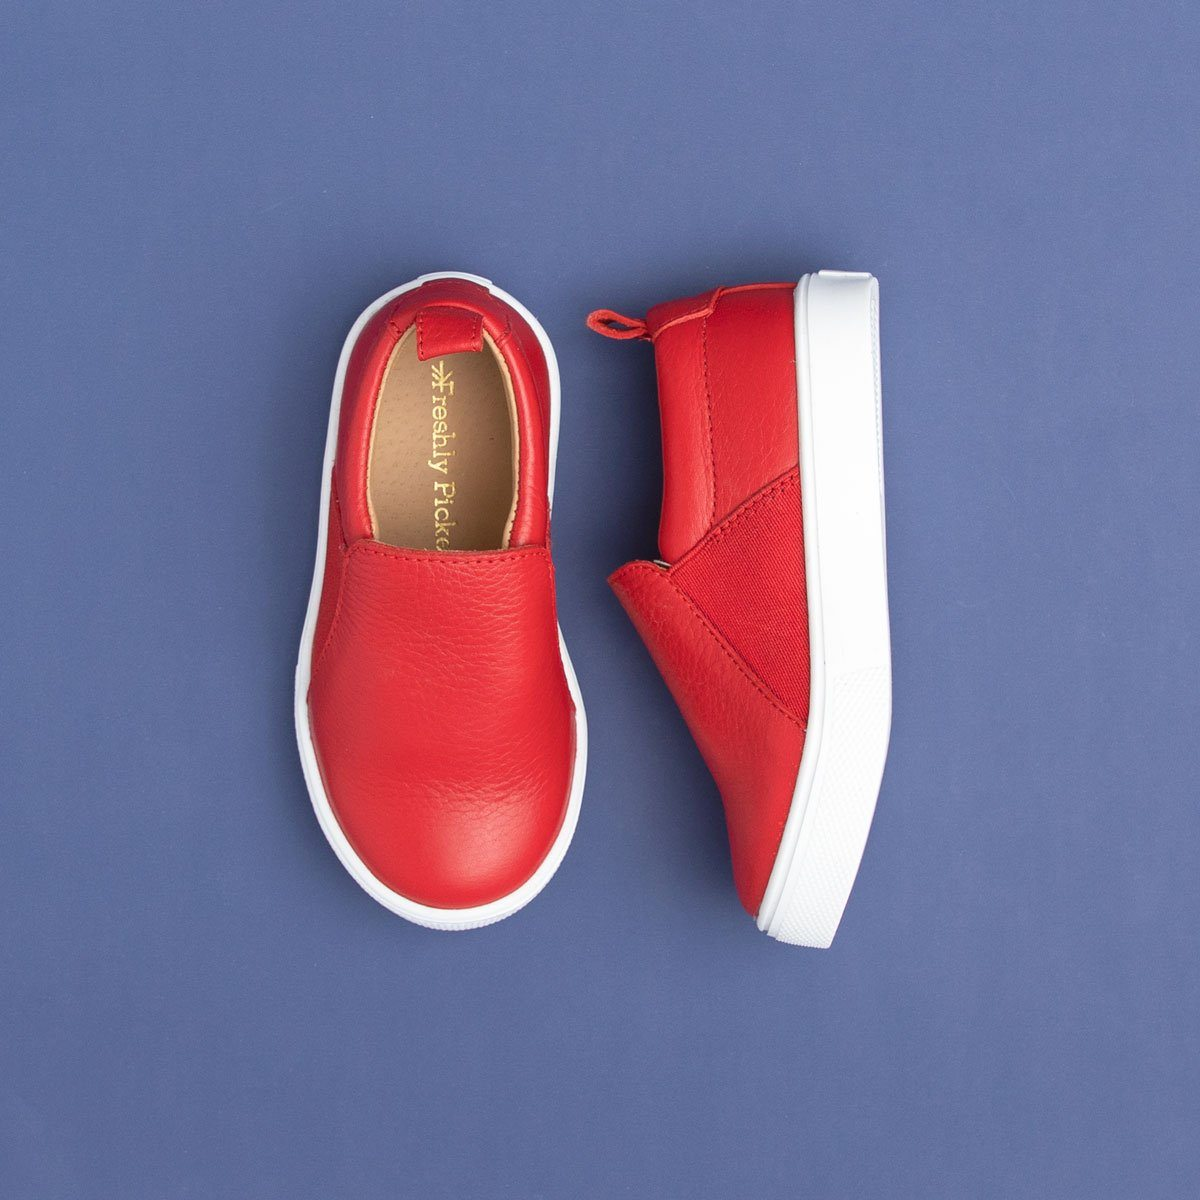 Cherry Slip-On Sneaker Kids - Classic Slip-On Sneaker Kids Sneakers